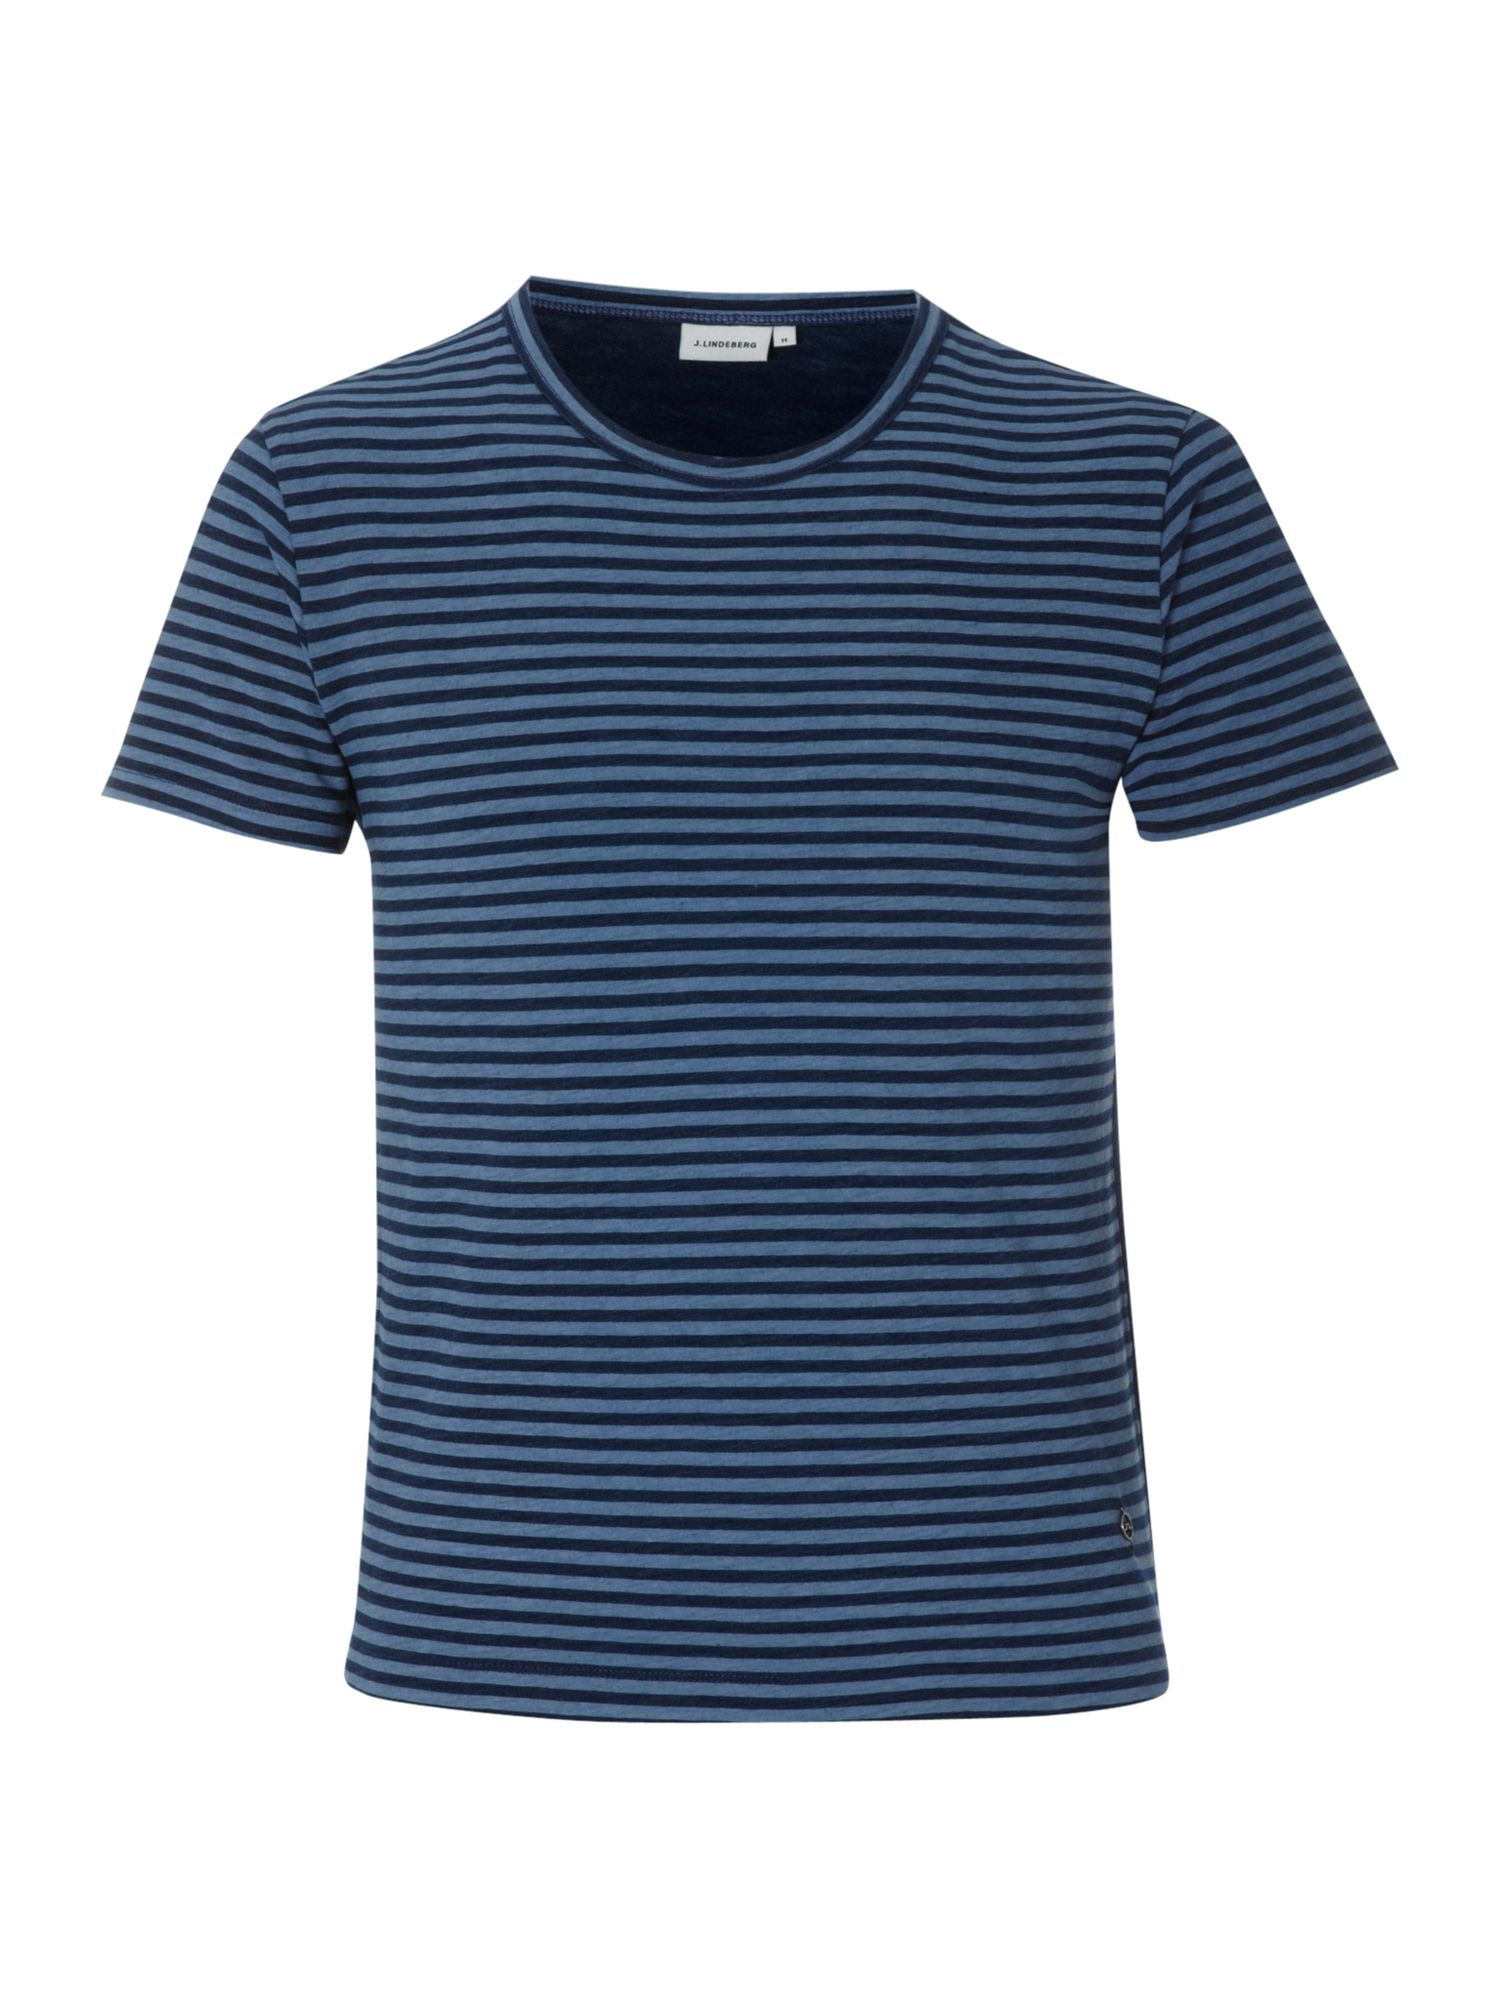 J Lindeberg Mens J Lindeberg Striped T-shirt, Denim product image